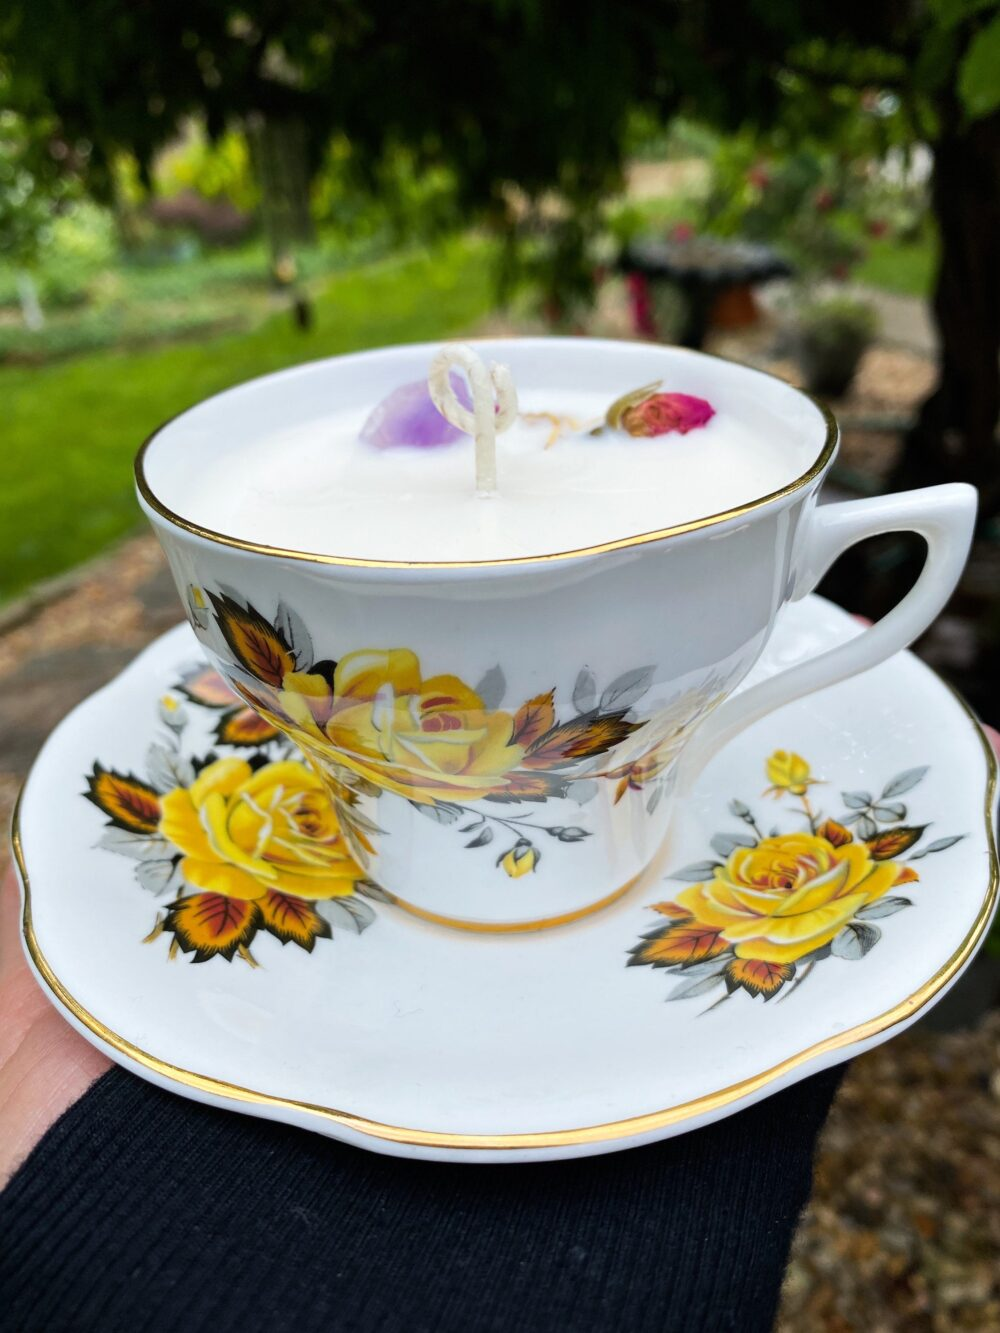 Vintage China Candle, Tea Cup Soy Wax, Cotton Wick, Tea Scented, Shabby Chic Cottage Repurposed, Cashmere, Fruit